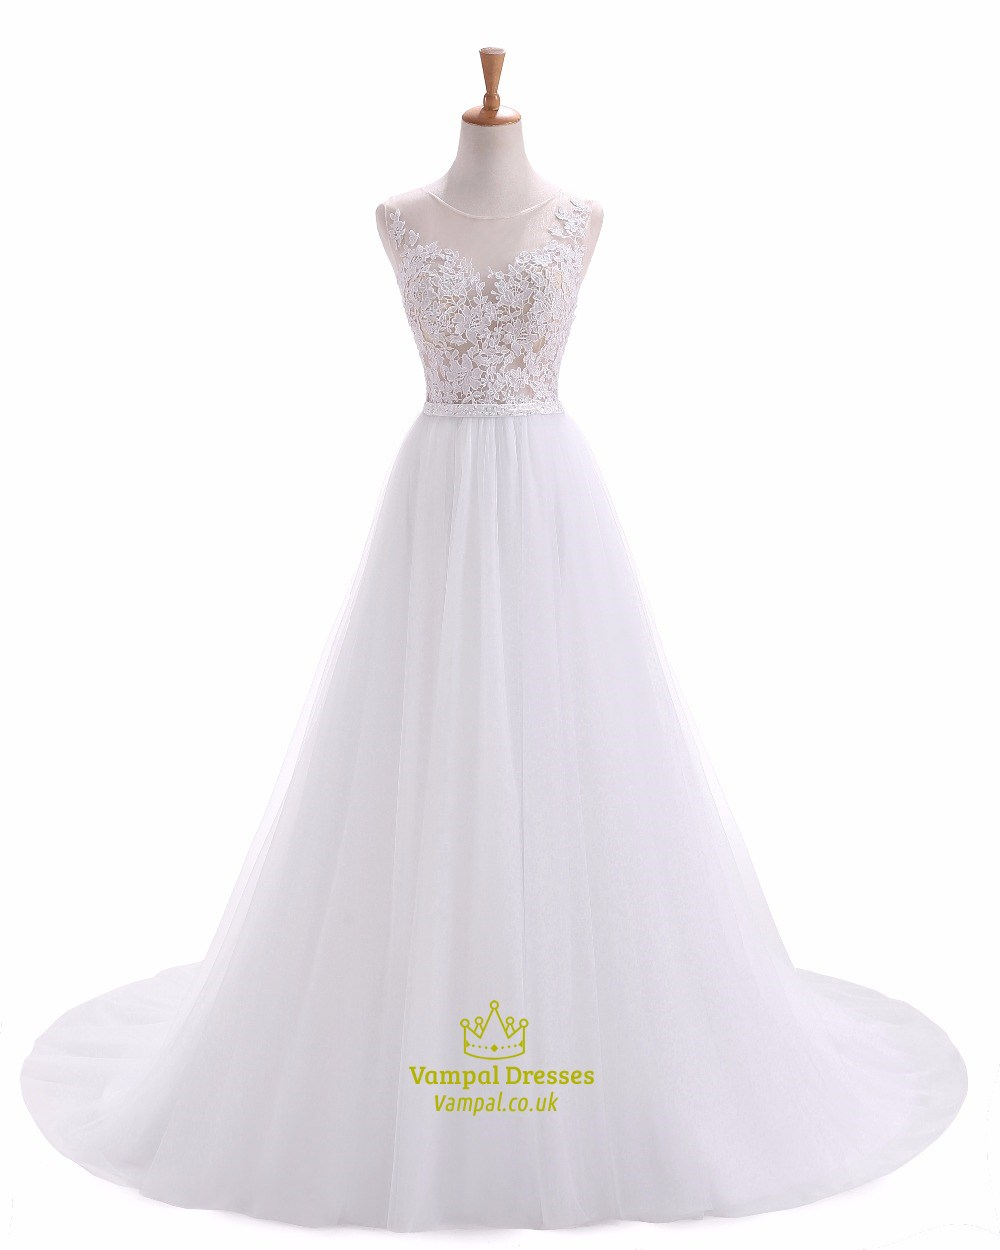 White Sleeveless Illusion Bodice Floor Length Wedding Dress With ...